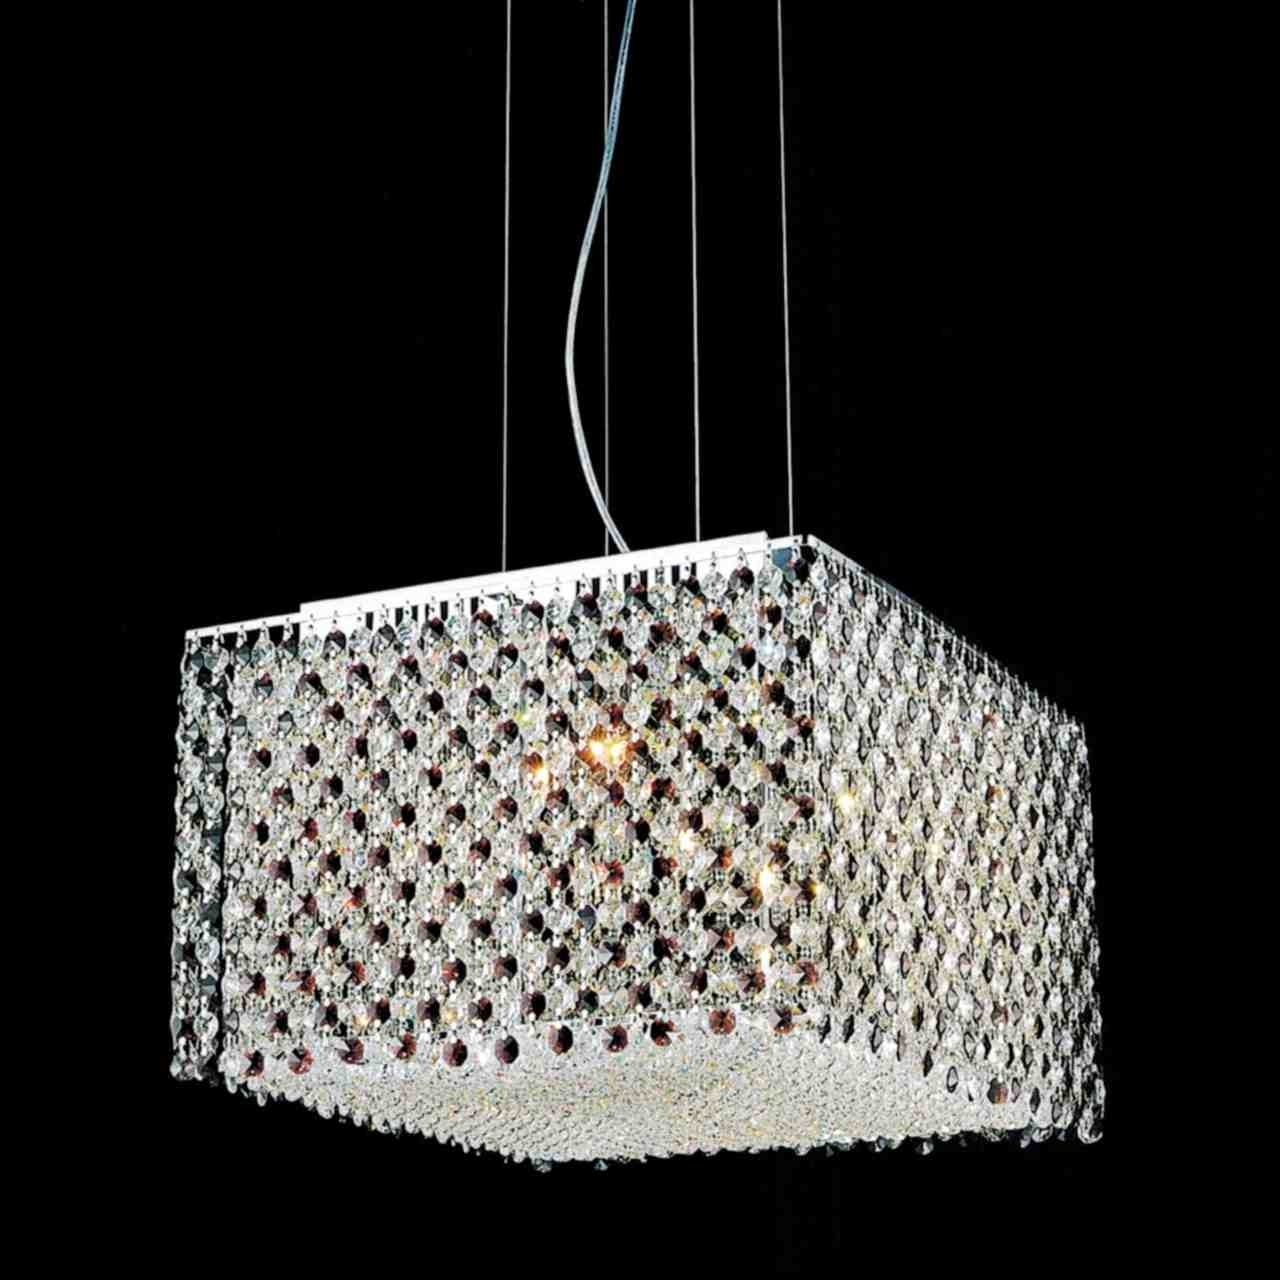 Crystal Modern Light Chandelier – The Modern Crystal Chandelier In Fashionable Modern Light Chandelier (View 10 of 20)